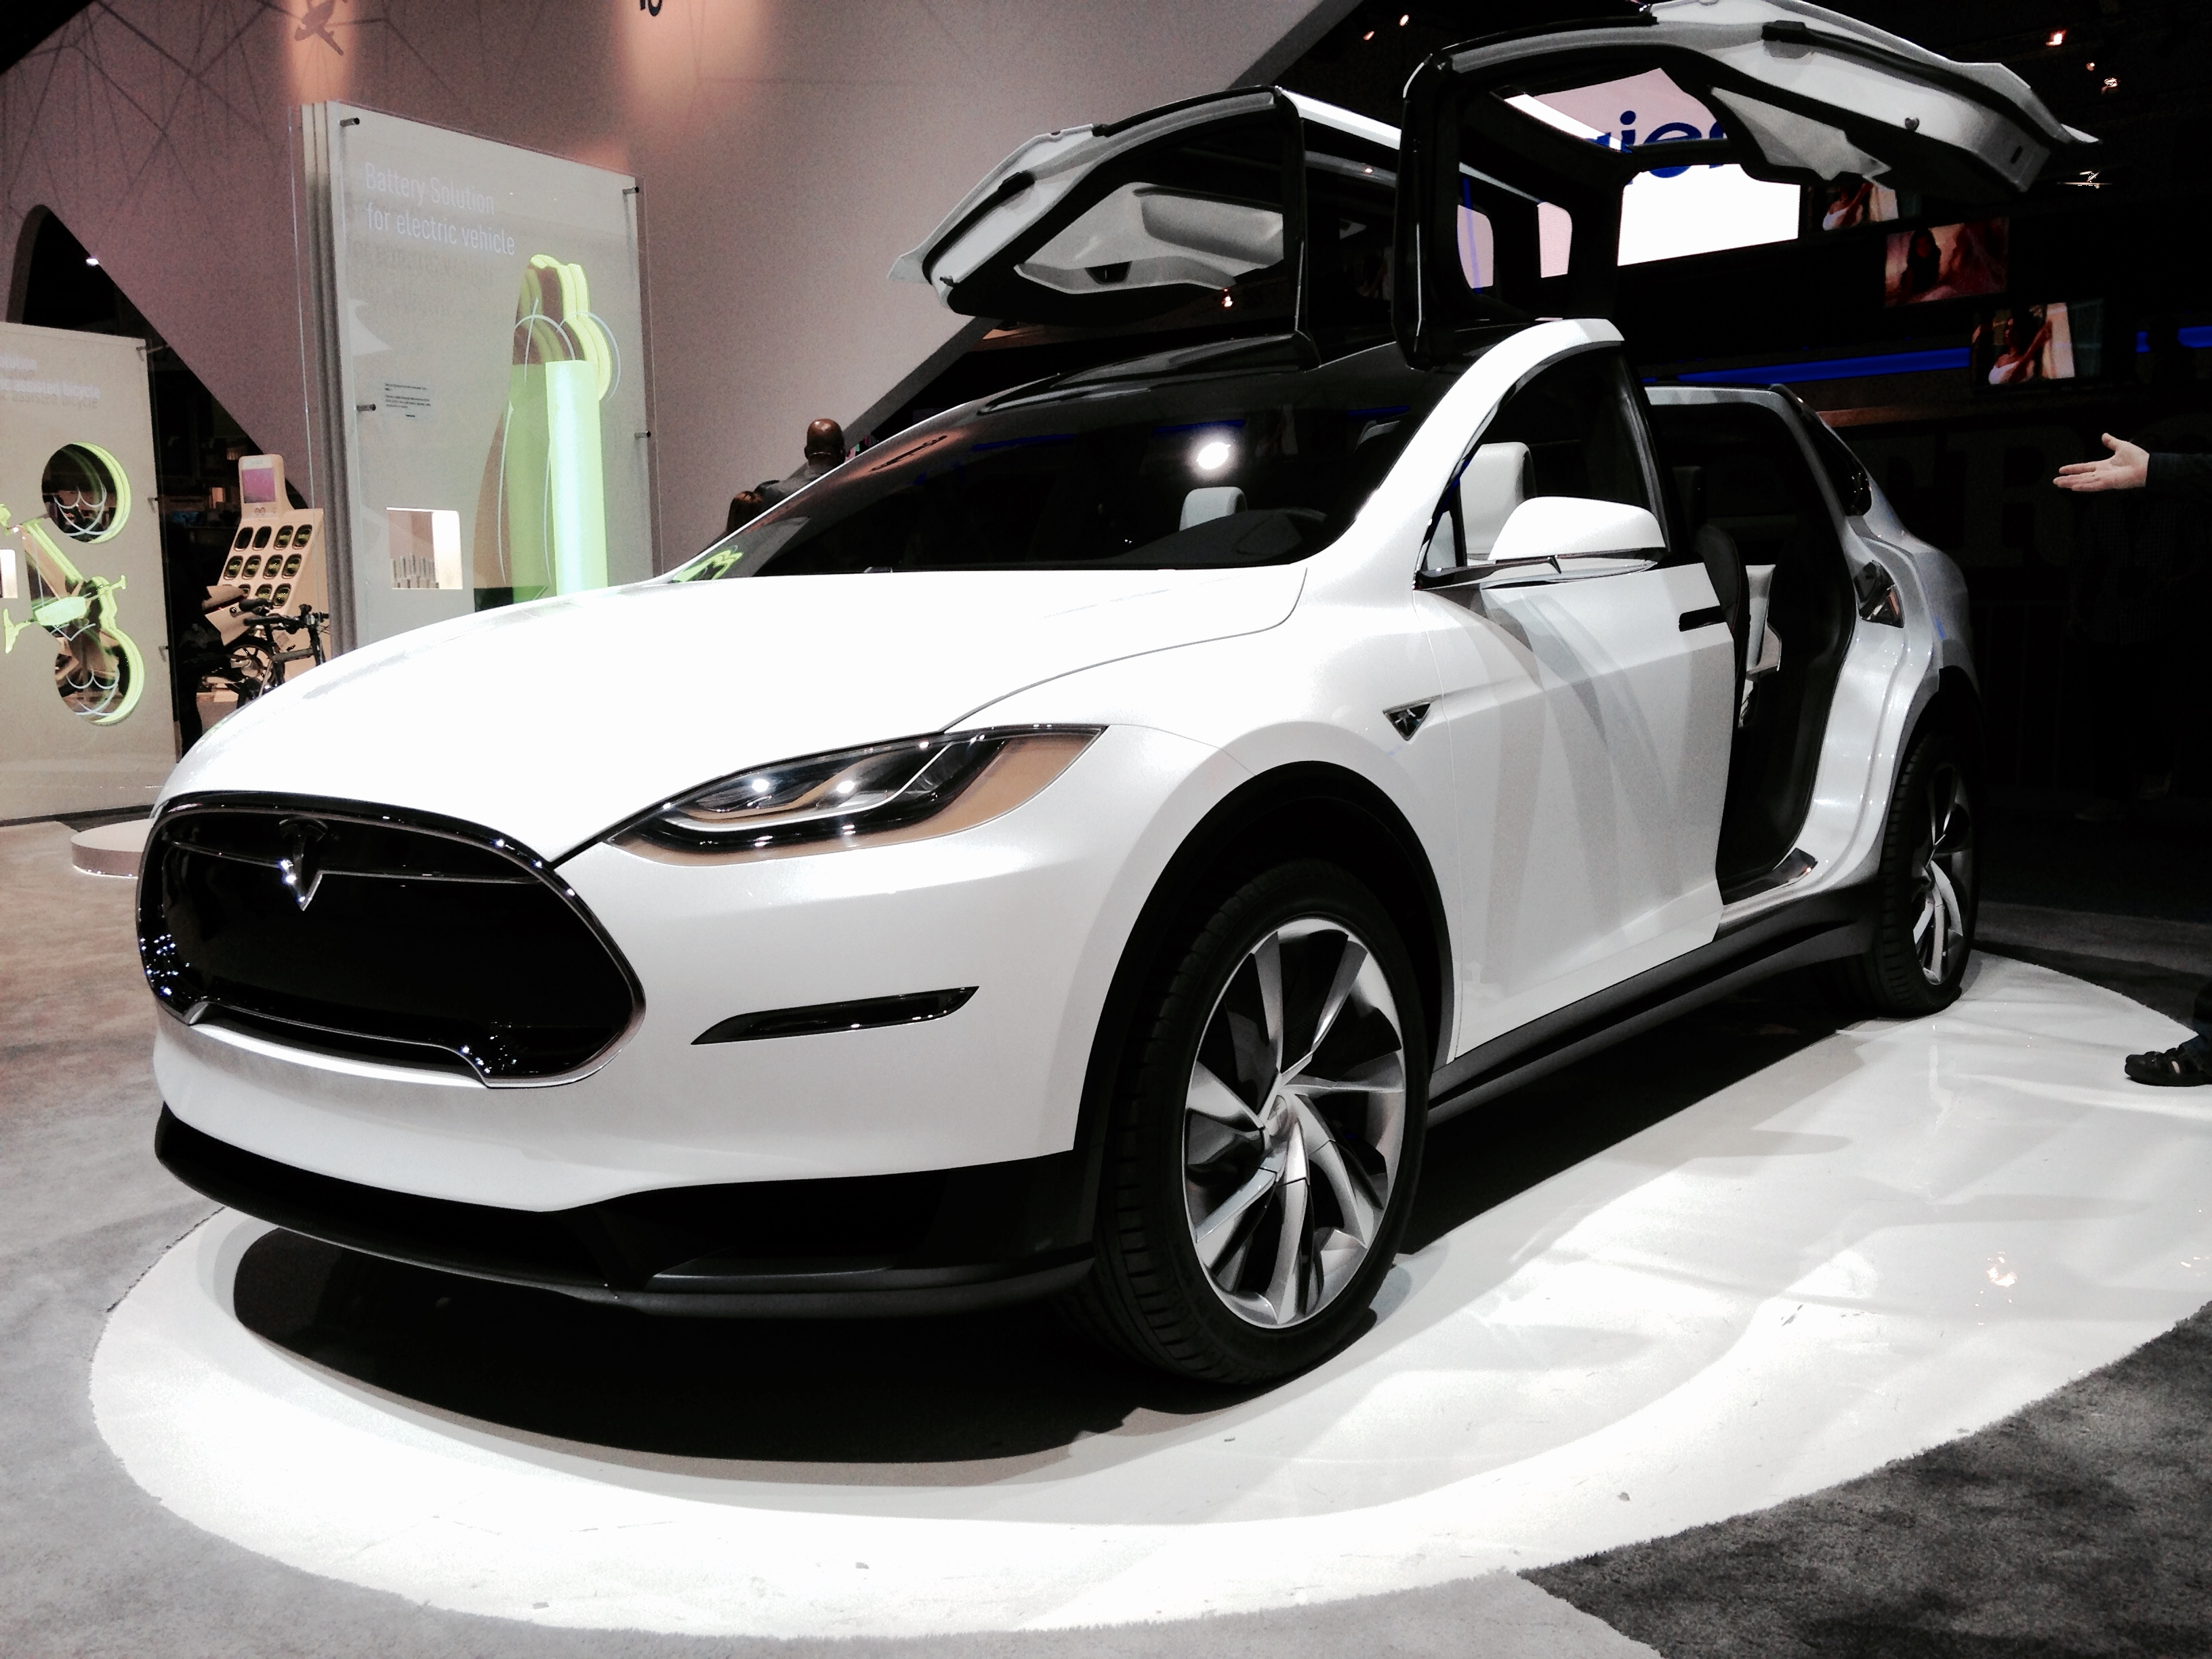 Tesla Model X, with its gullwing doors